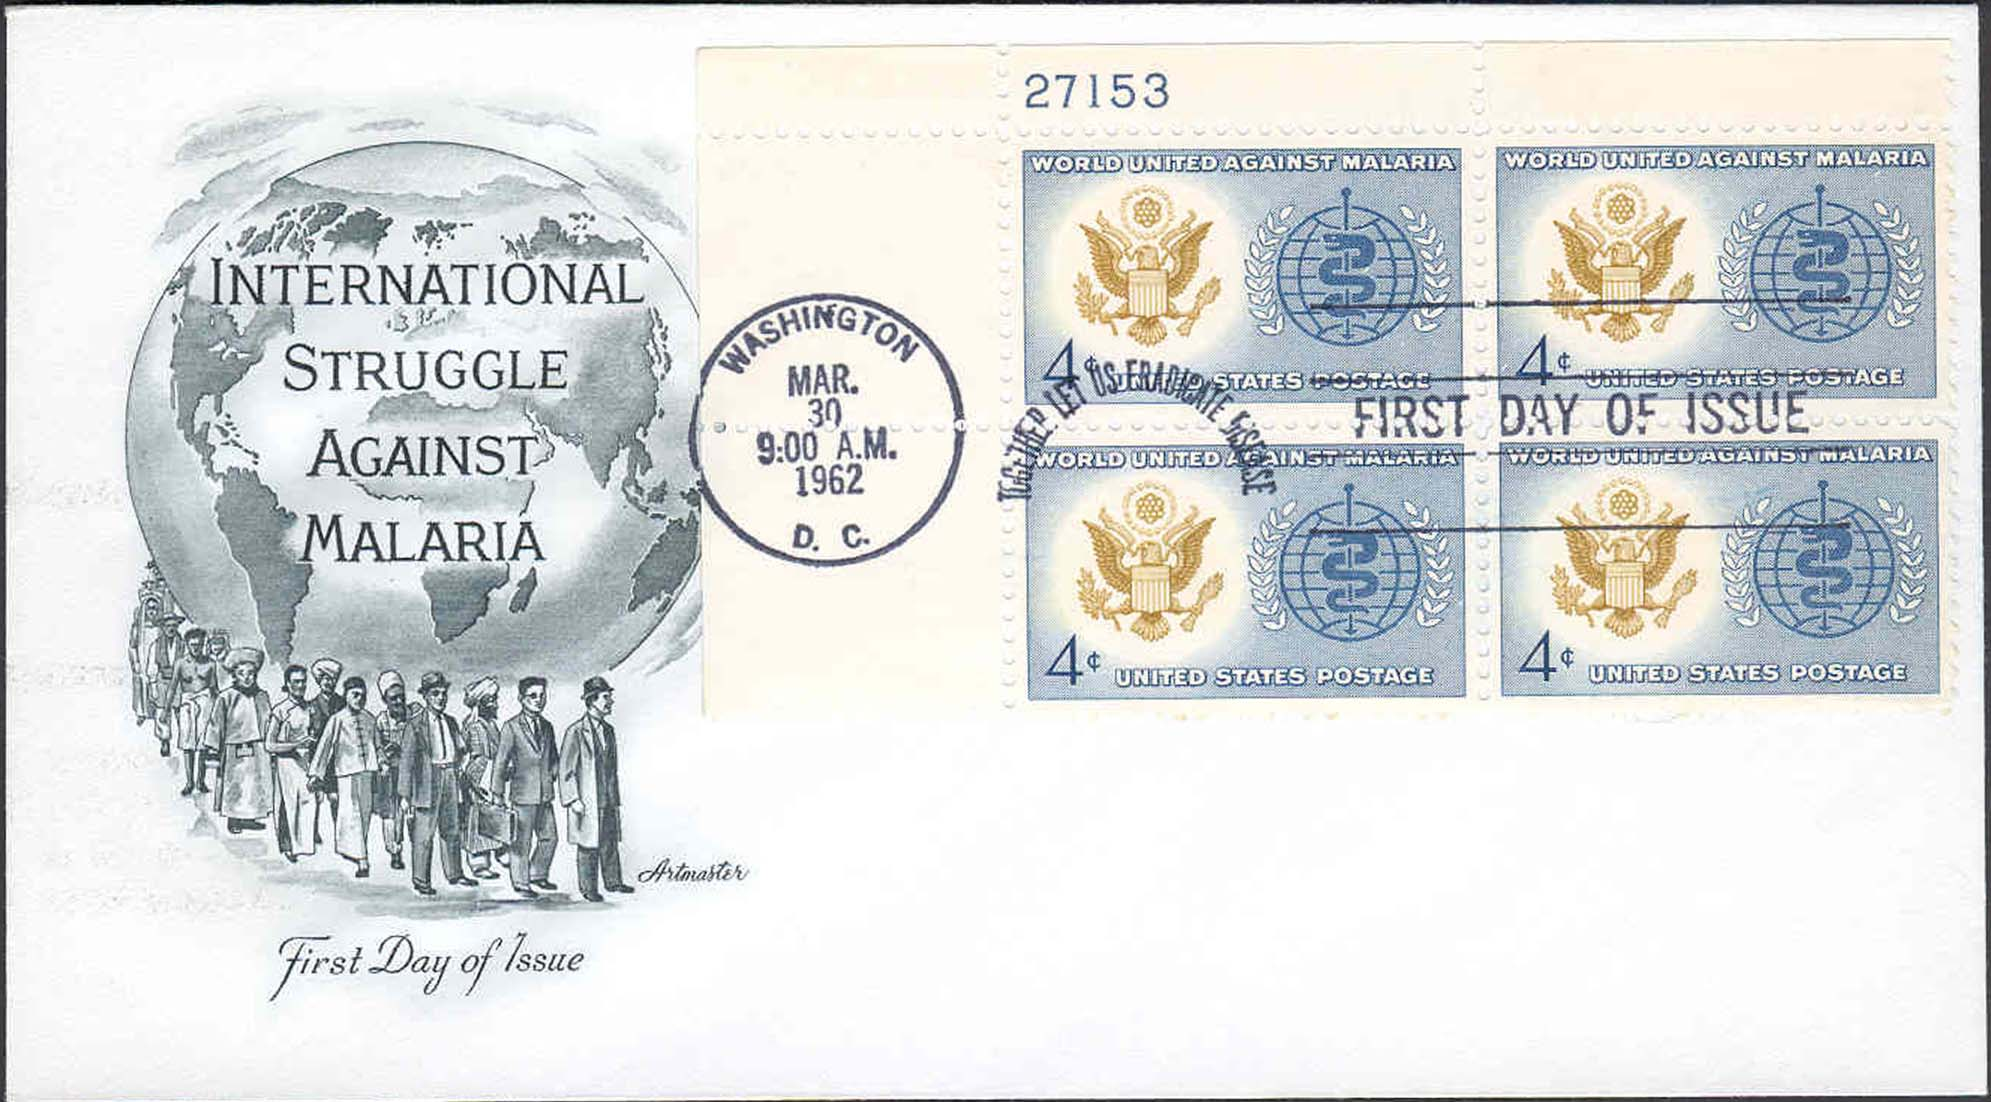 United States Scott 1194 On FDC With Artmaster Cachet (Plate Block 21753 Upper Left)